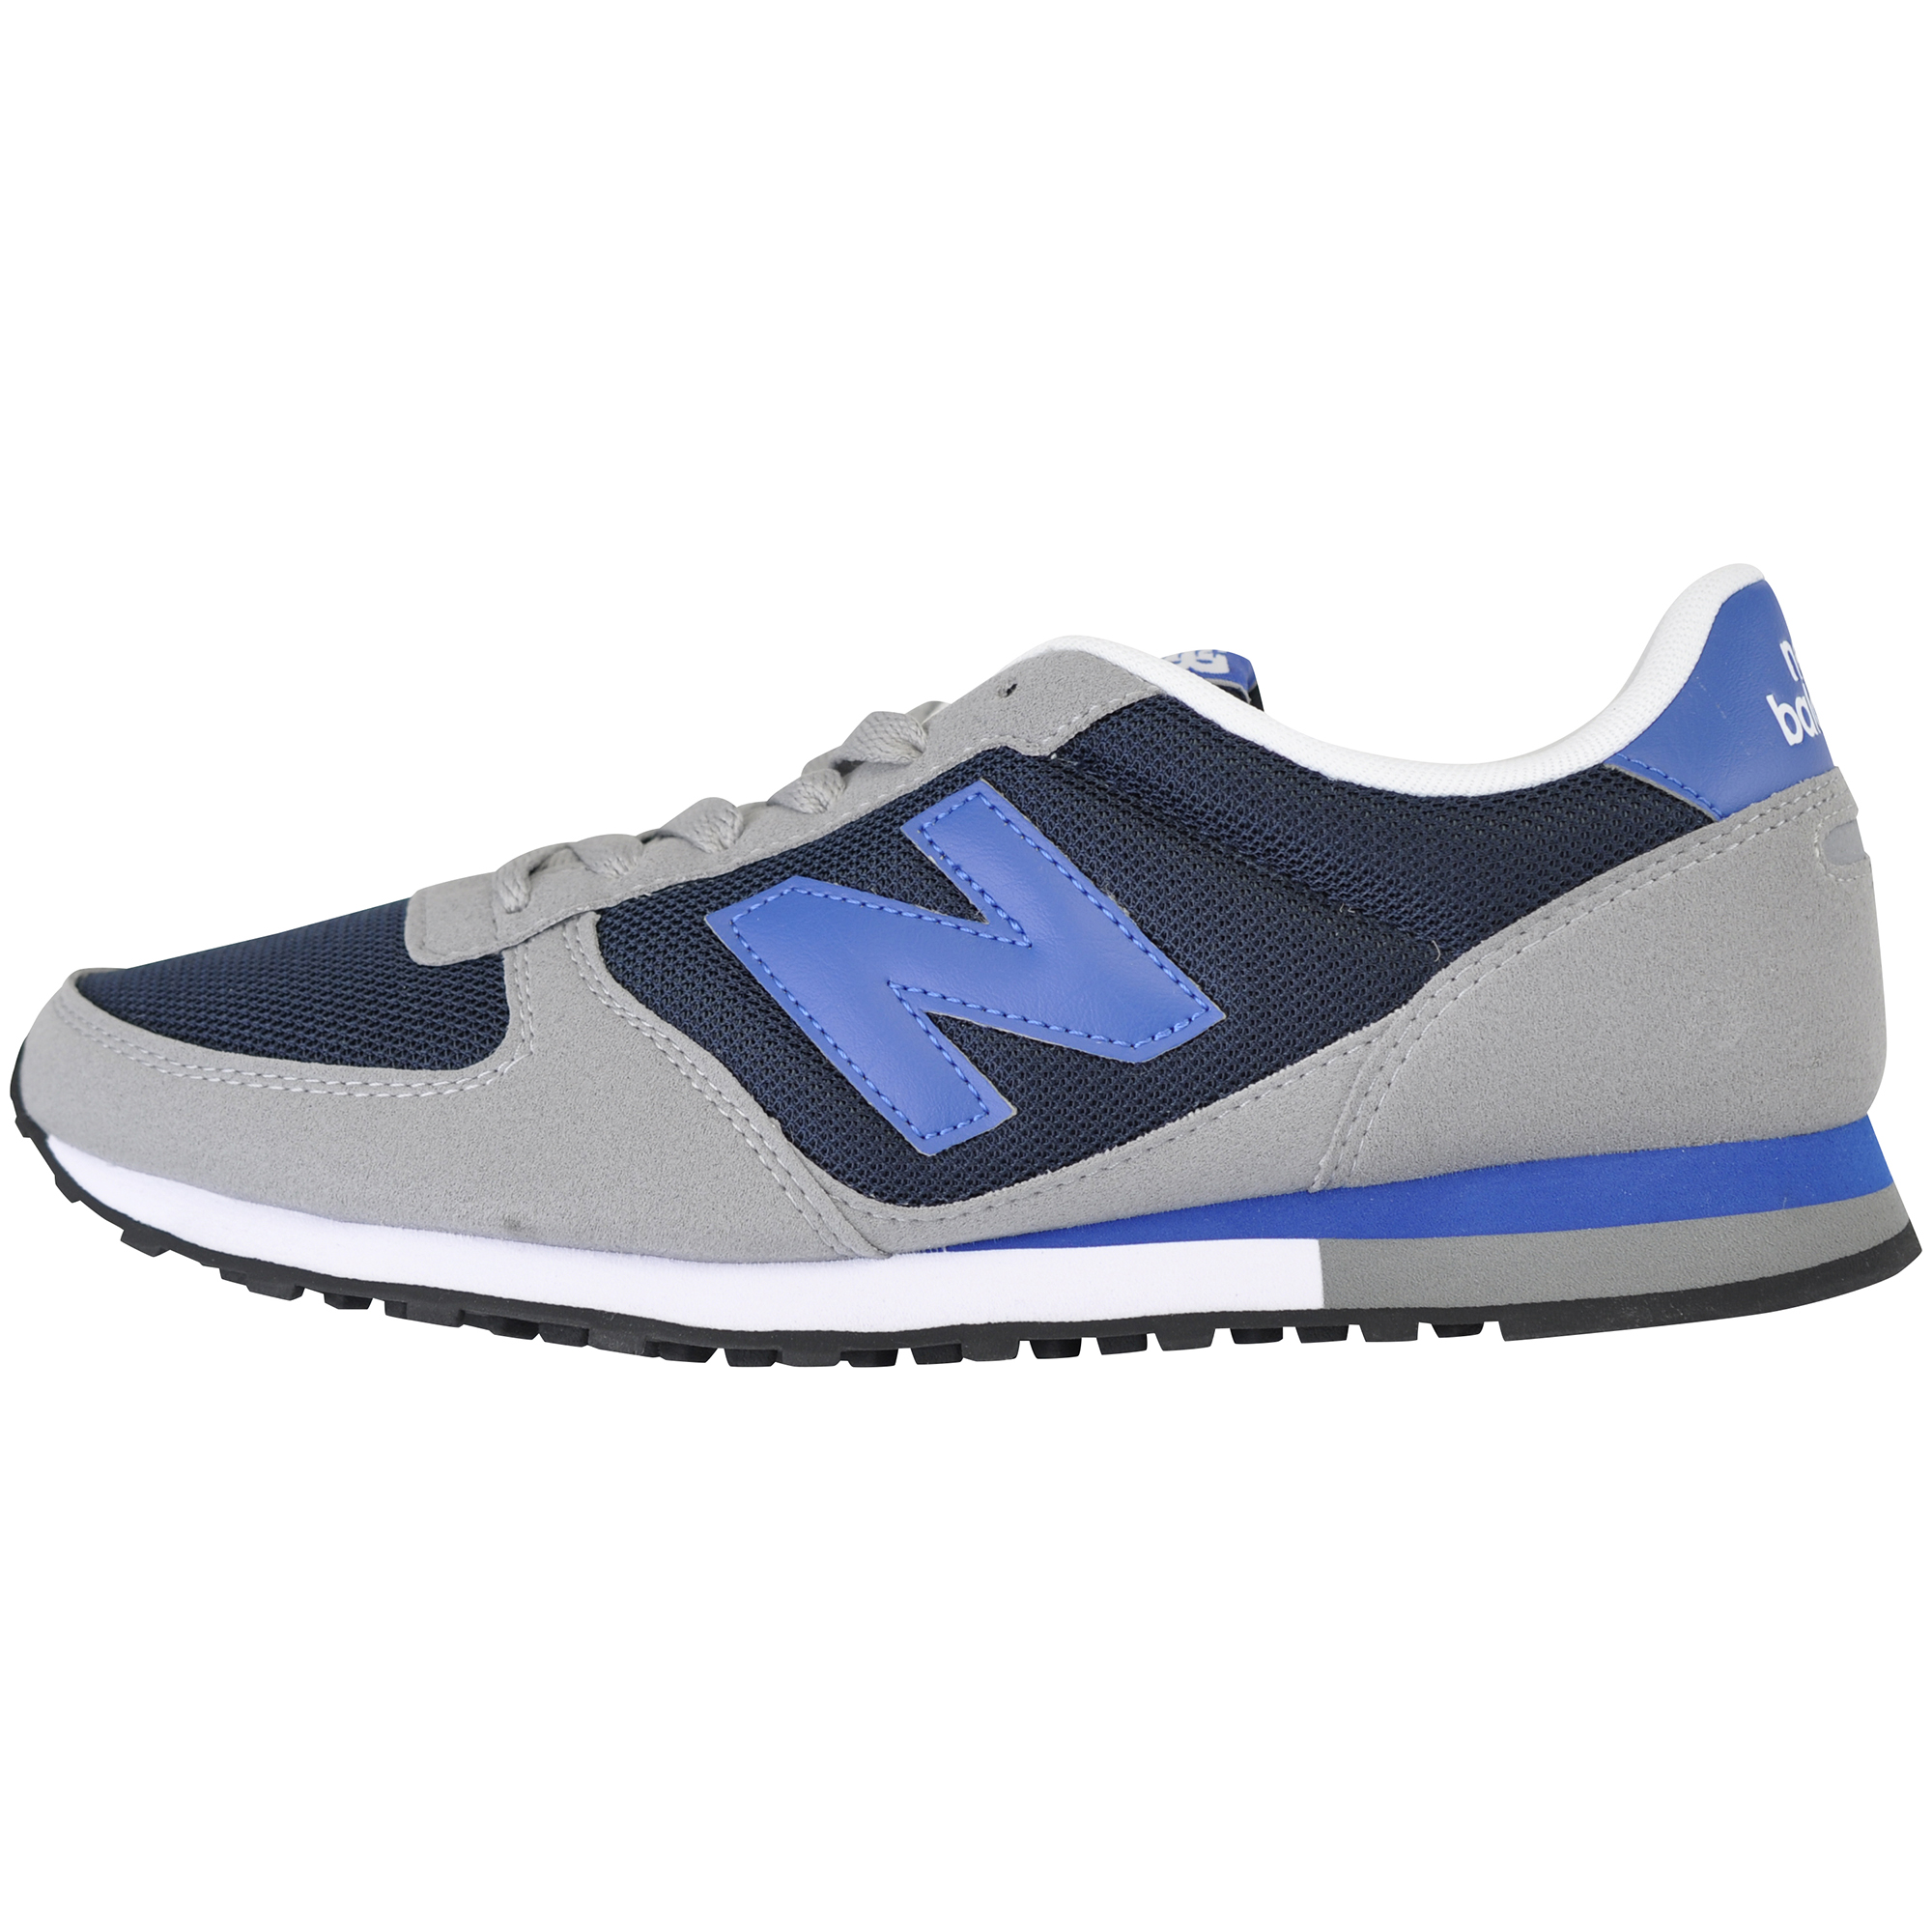 new balance ml574 m554 m373 360 u420 446 wl574 herren frauen laufschuhe sneaker ebay. Black Bedroom Furniture Sets. Home Design Ideas